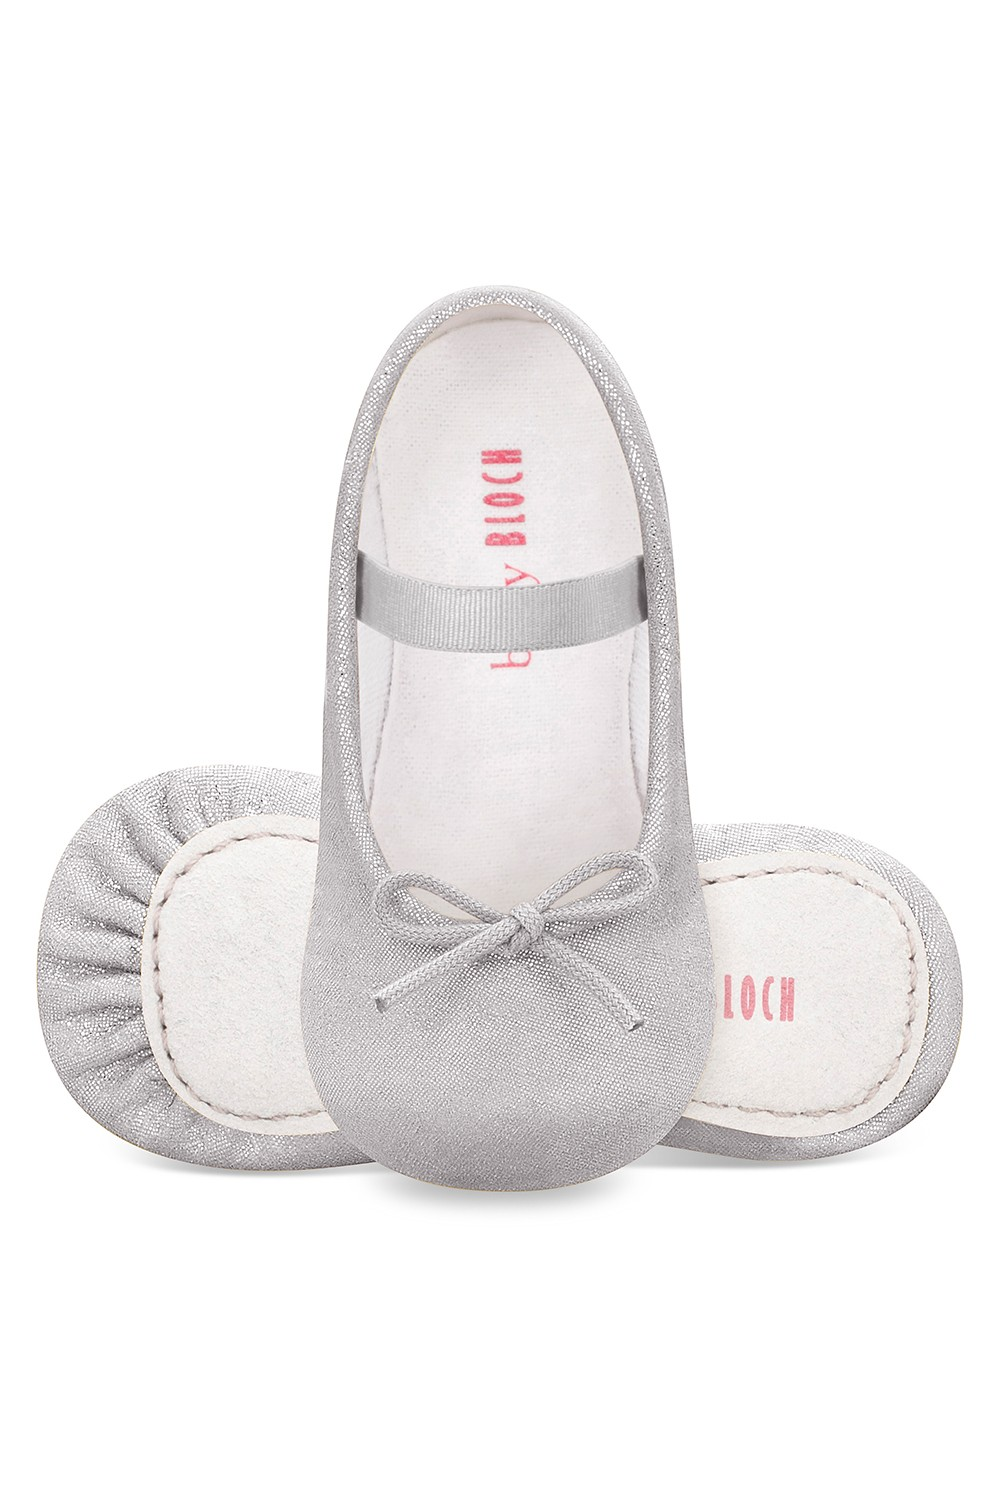 Sirenetta Babies Fashion Shoes